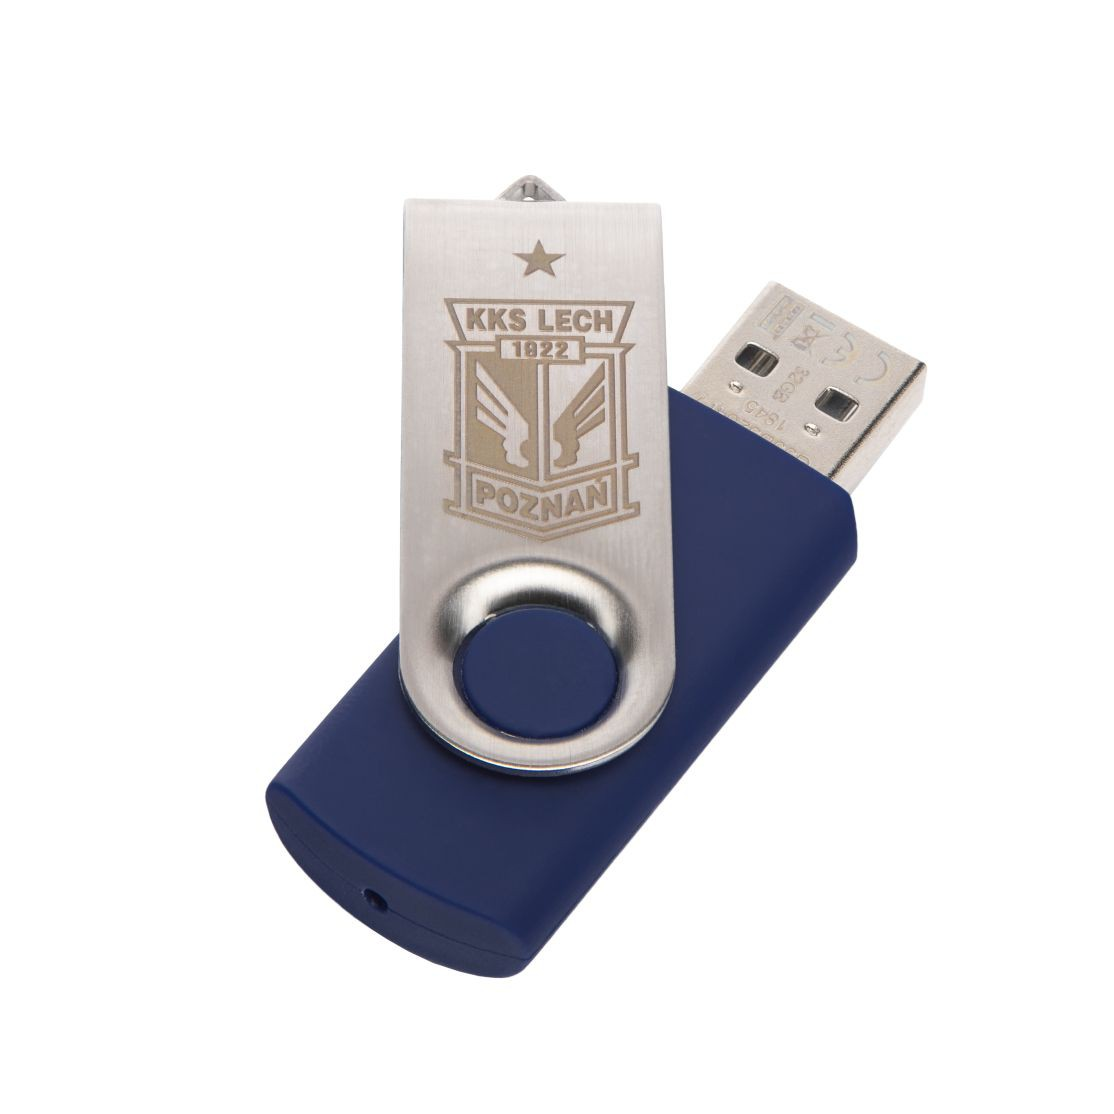 PENDRIVE LP 32GB